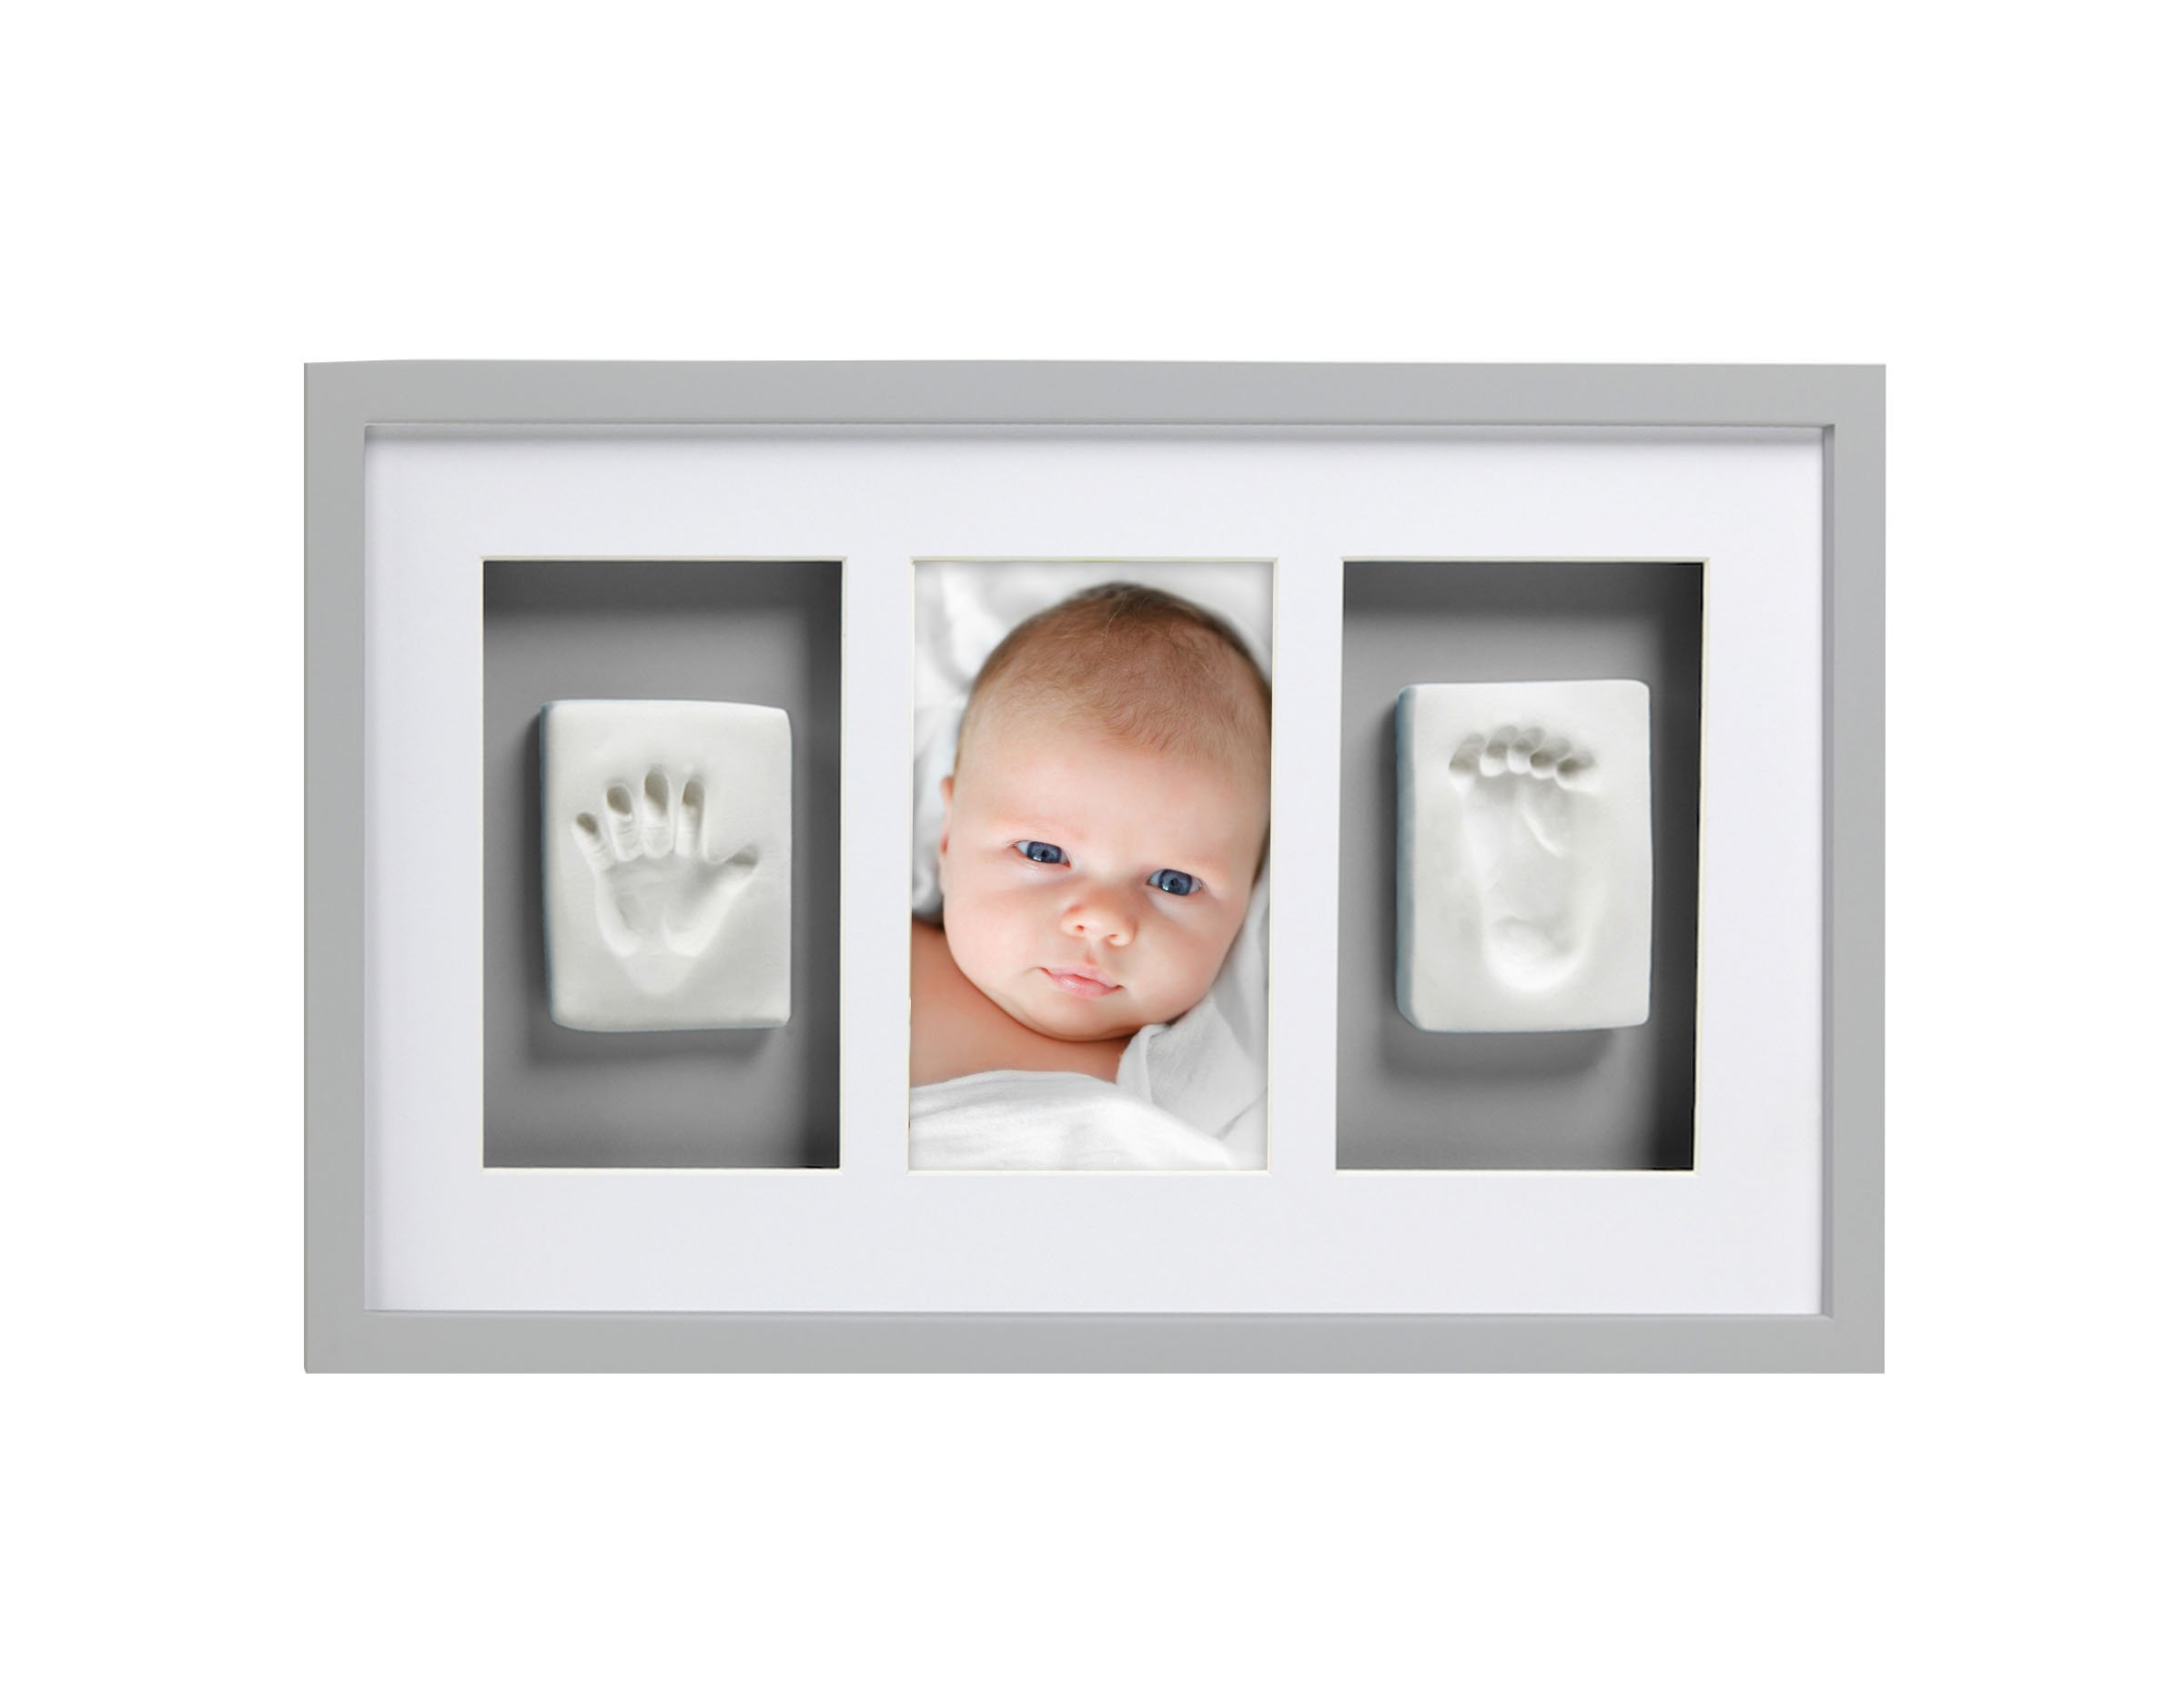 Pearhead Babyprints Newborn Baby Handprint and Footprint Deluxe Wall Photo Frame & Impression Kit - Makes A Perfect Baby Shower Gift, Gray by Pearhead